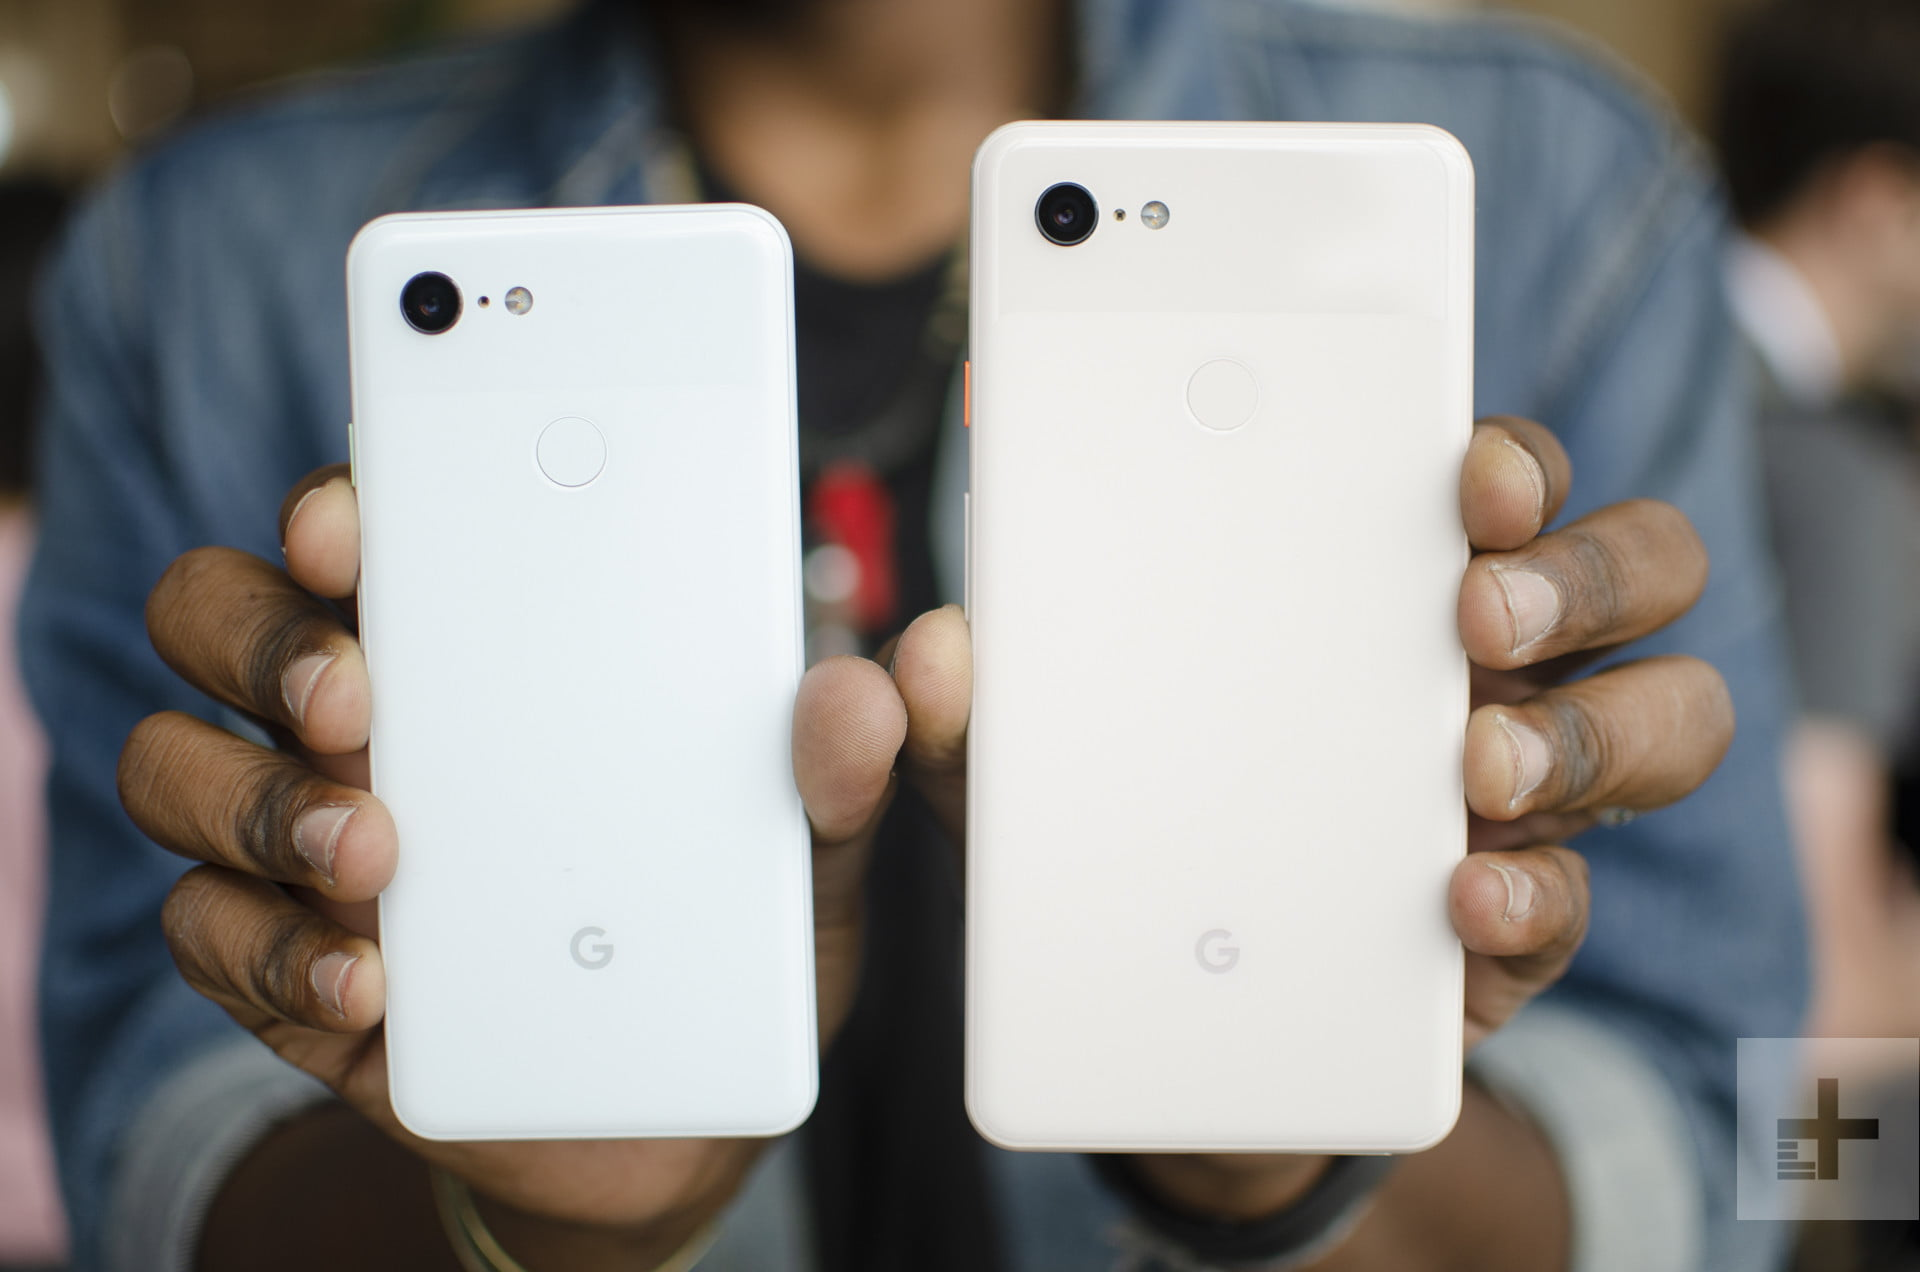 Pixel 3 and Pixel 3 XL: How and Where to Buy Google's New